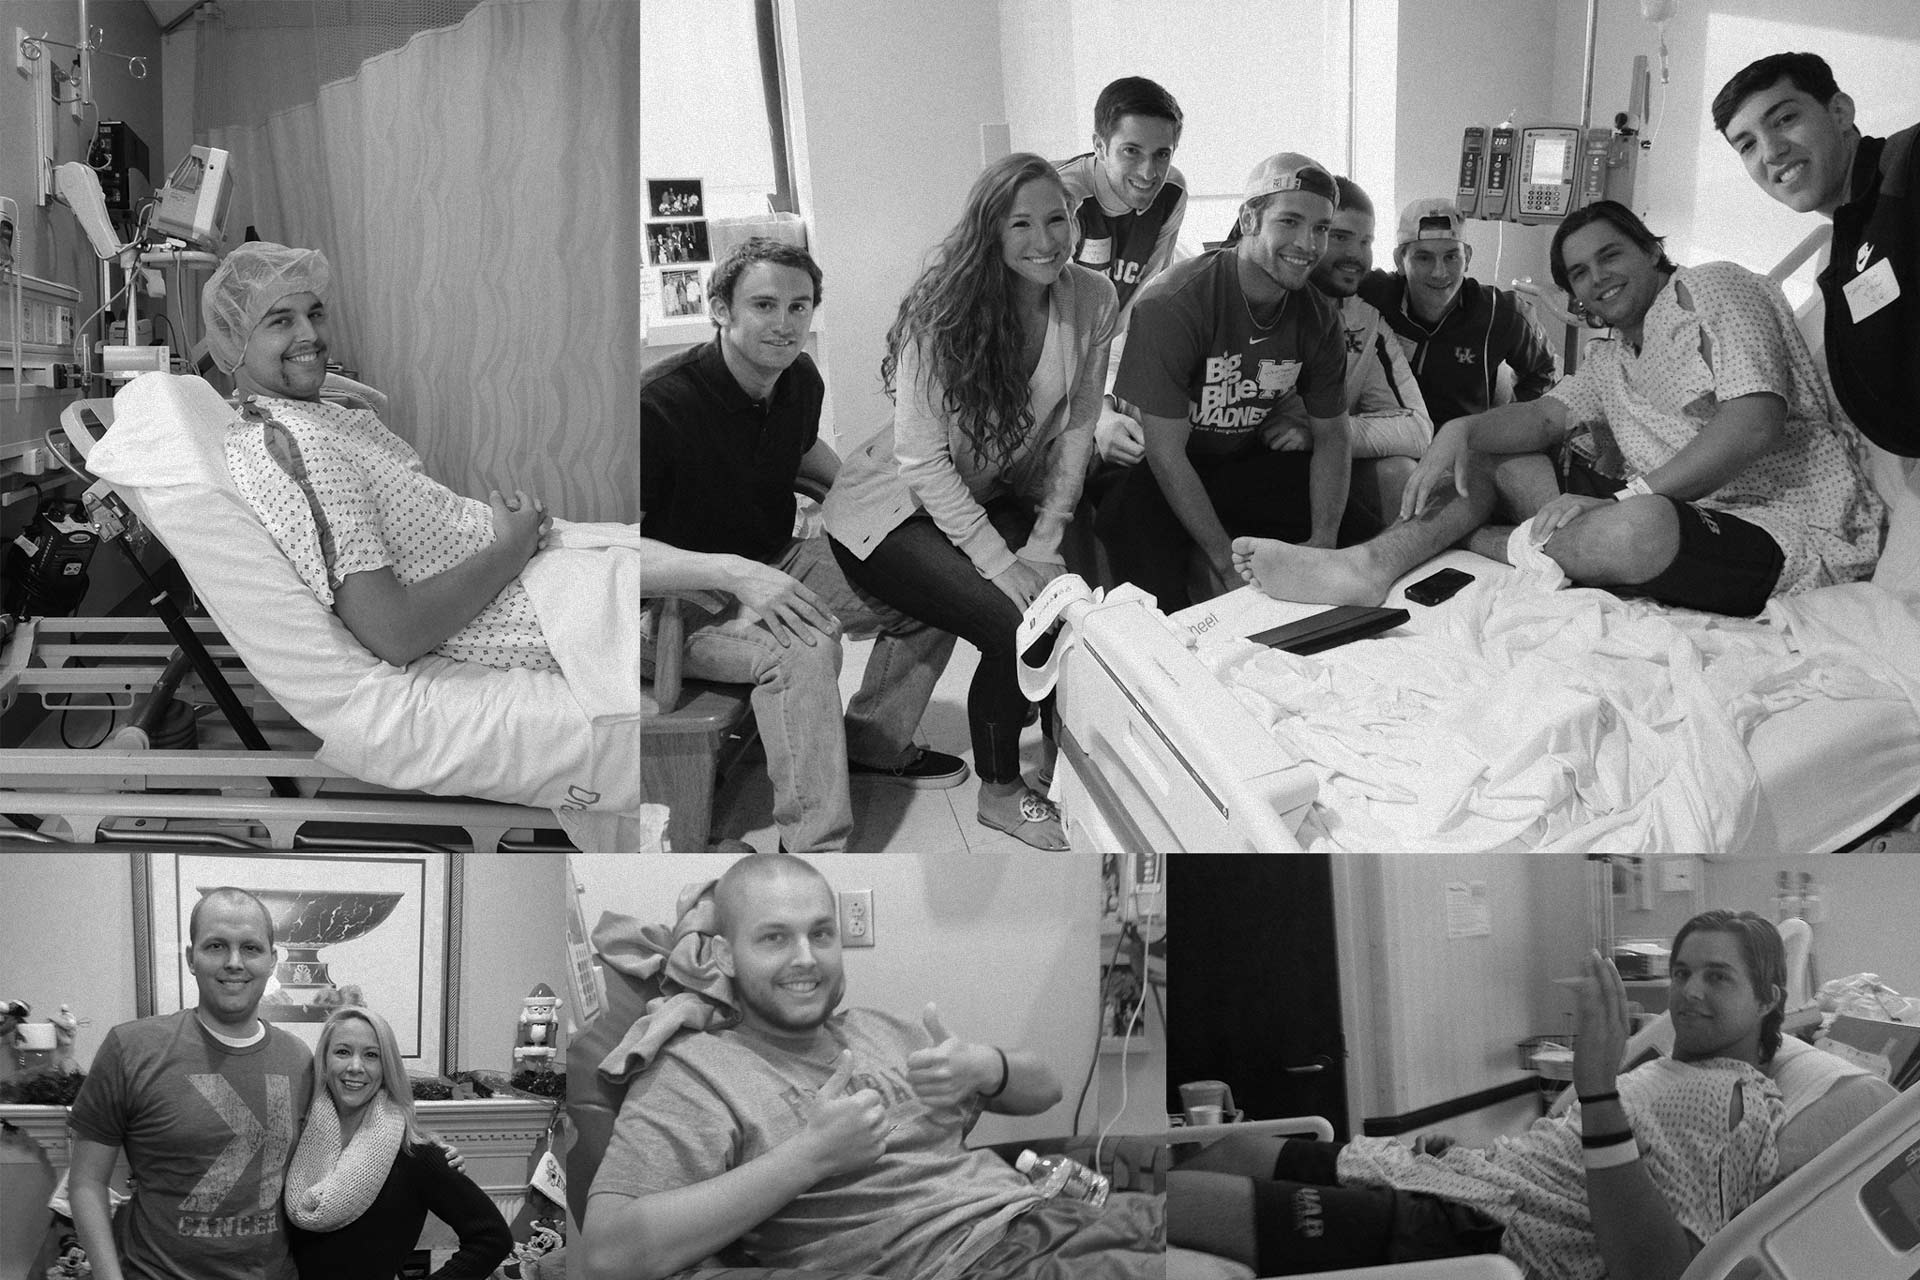 Grid of black-and-white images of Trent in the hospital during his treatments, showing friends visiting him. He is wearing a hospital gown and long brown hair in some images. In others, his hair is shaved off.